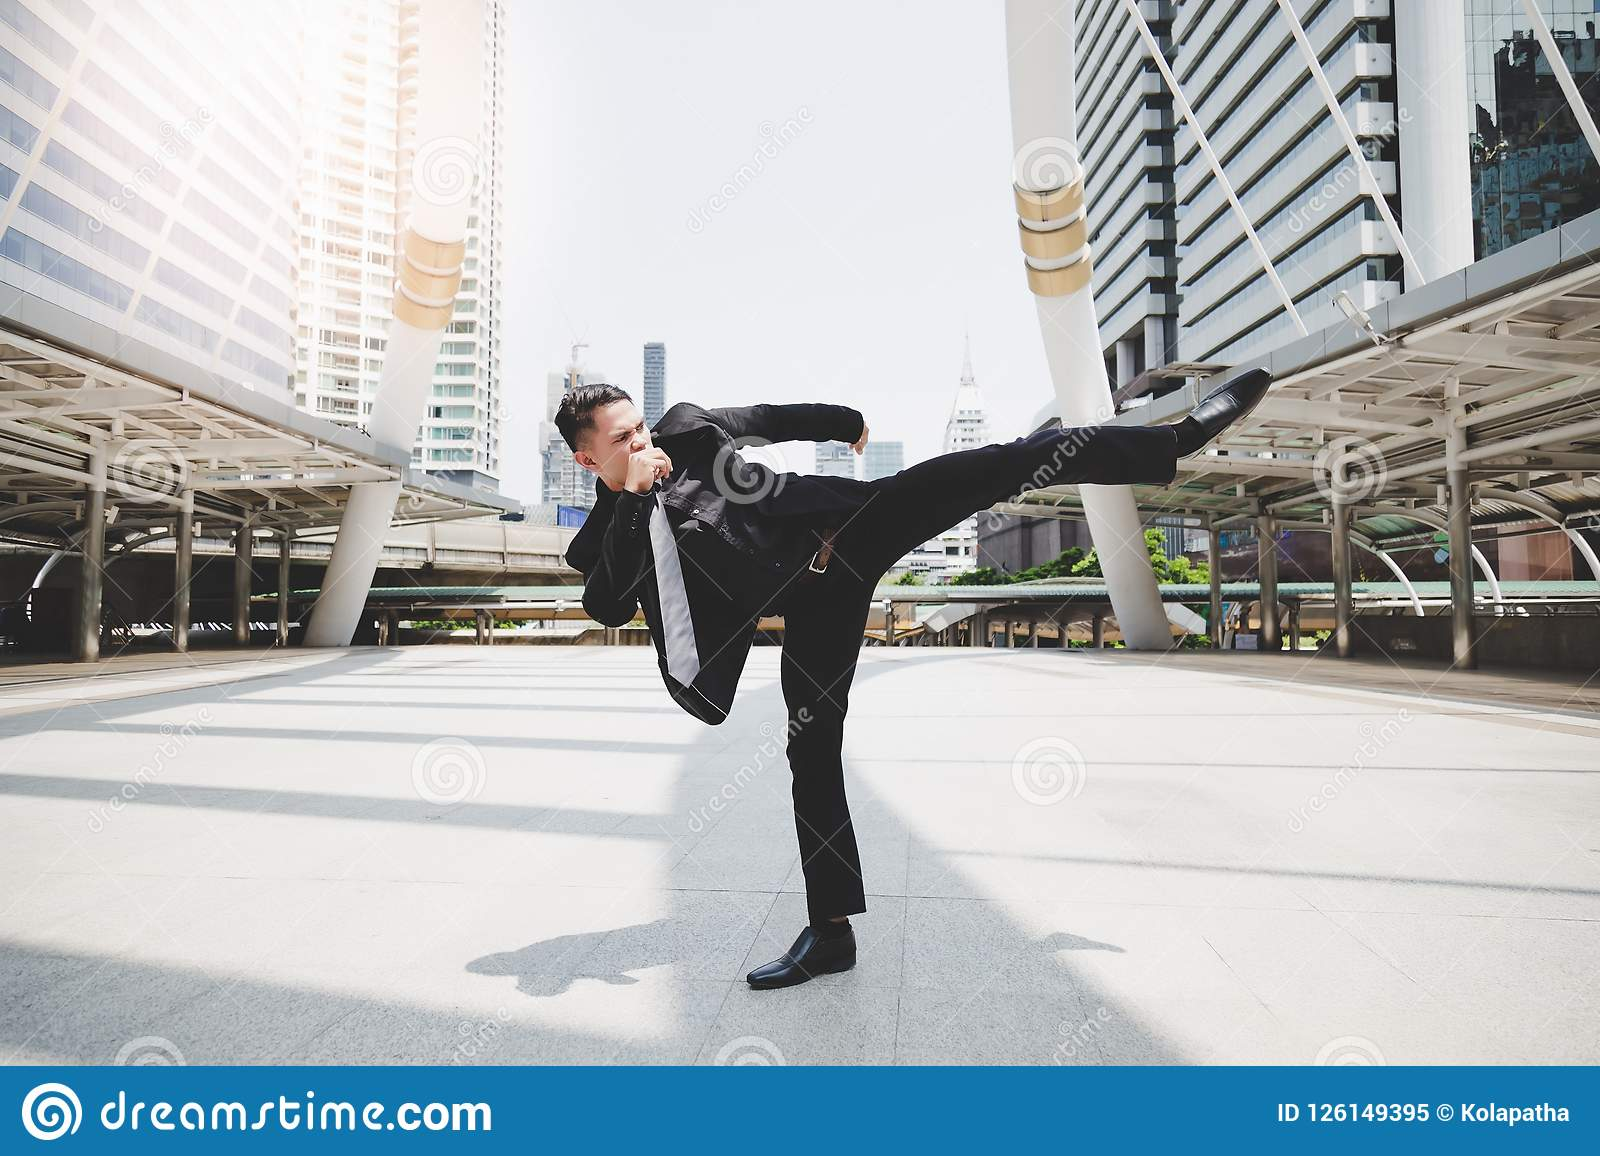 Handsome businessman get angry his boss and wants to relieve stress and furious. Cool guy is exercising by kicking on the air. At